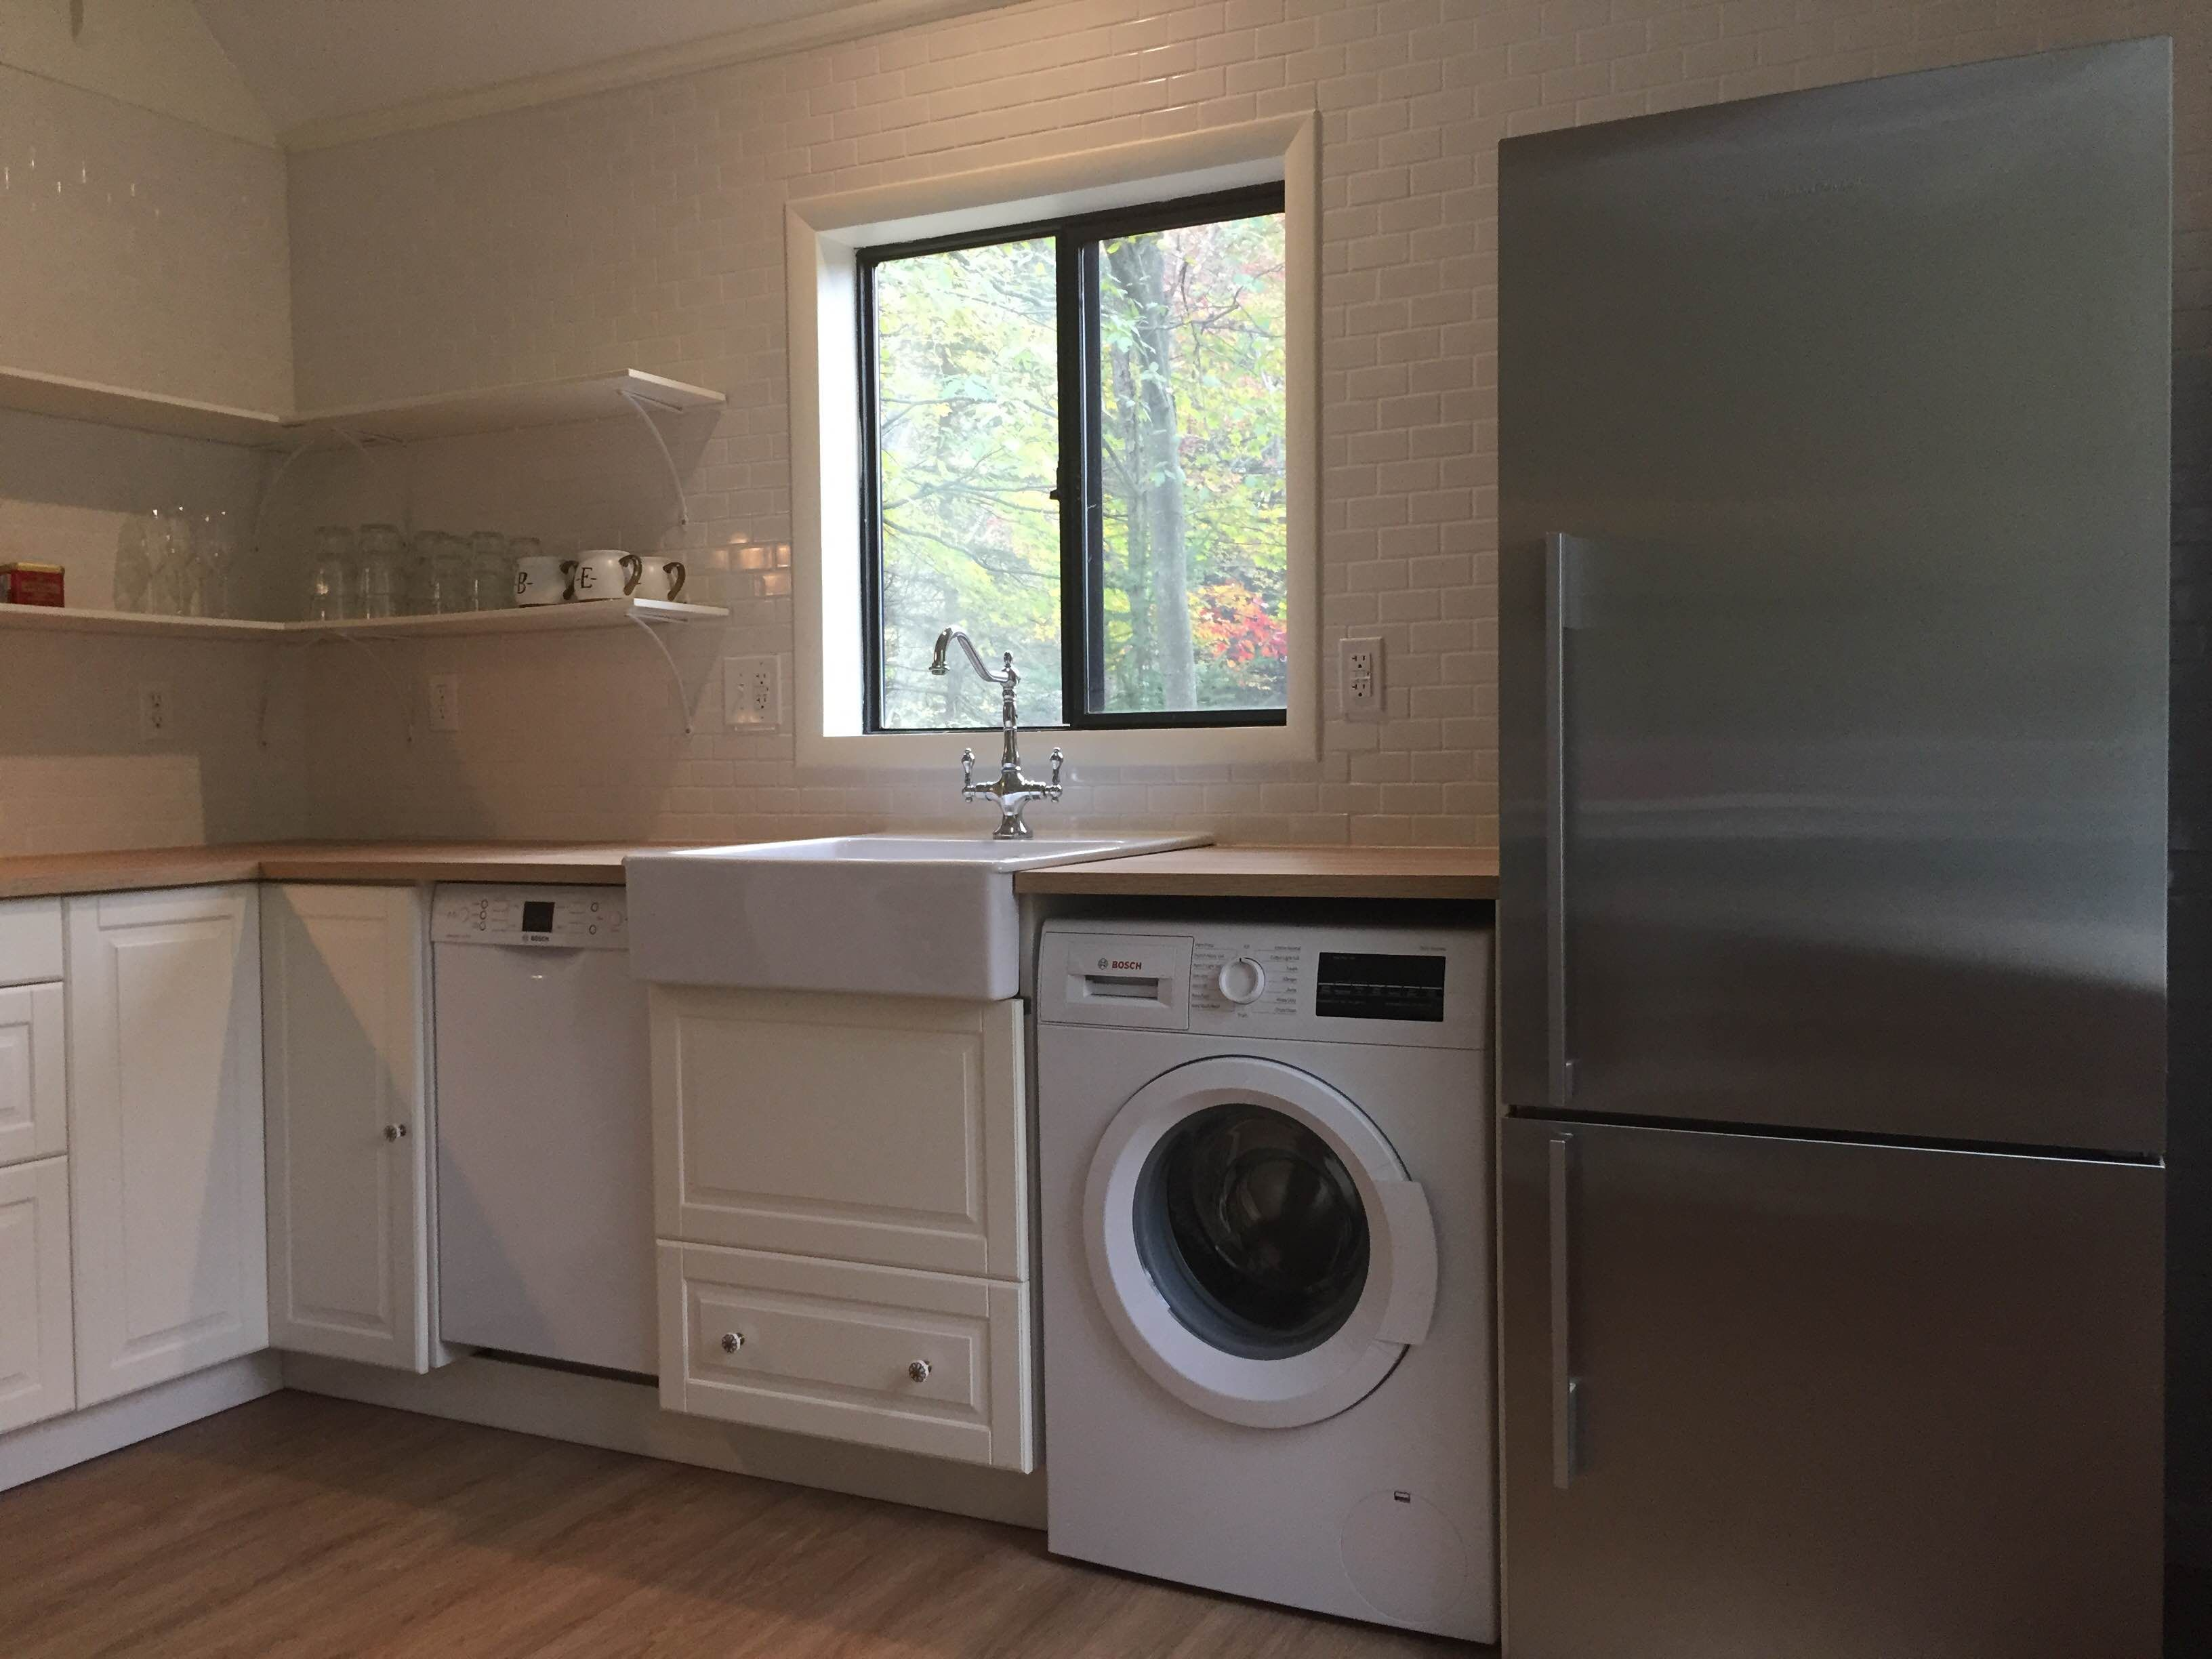 kitchen design with washing machine. Rashonda Chose European Sized Appliances So She Could Fit An Oven  Sink Dishwasher Washer AND Dryer Into Her Kitchen The Is Only 18 Wide